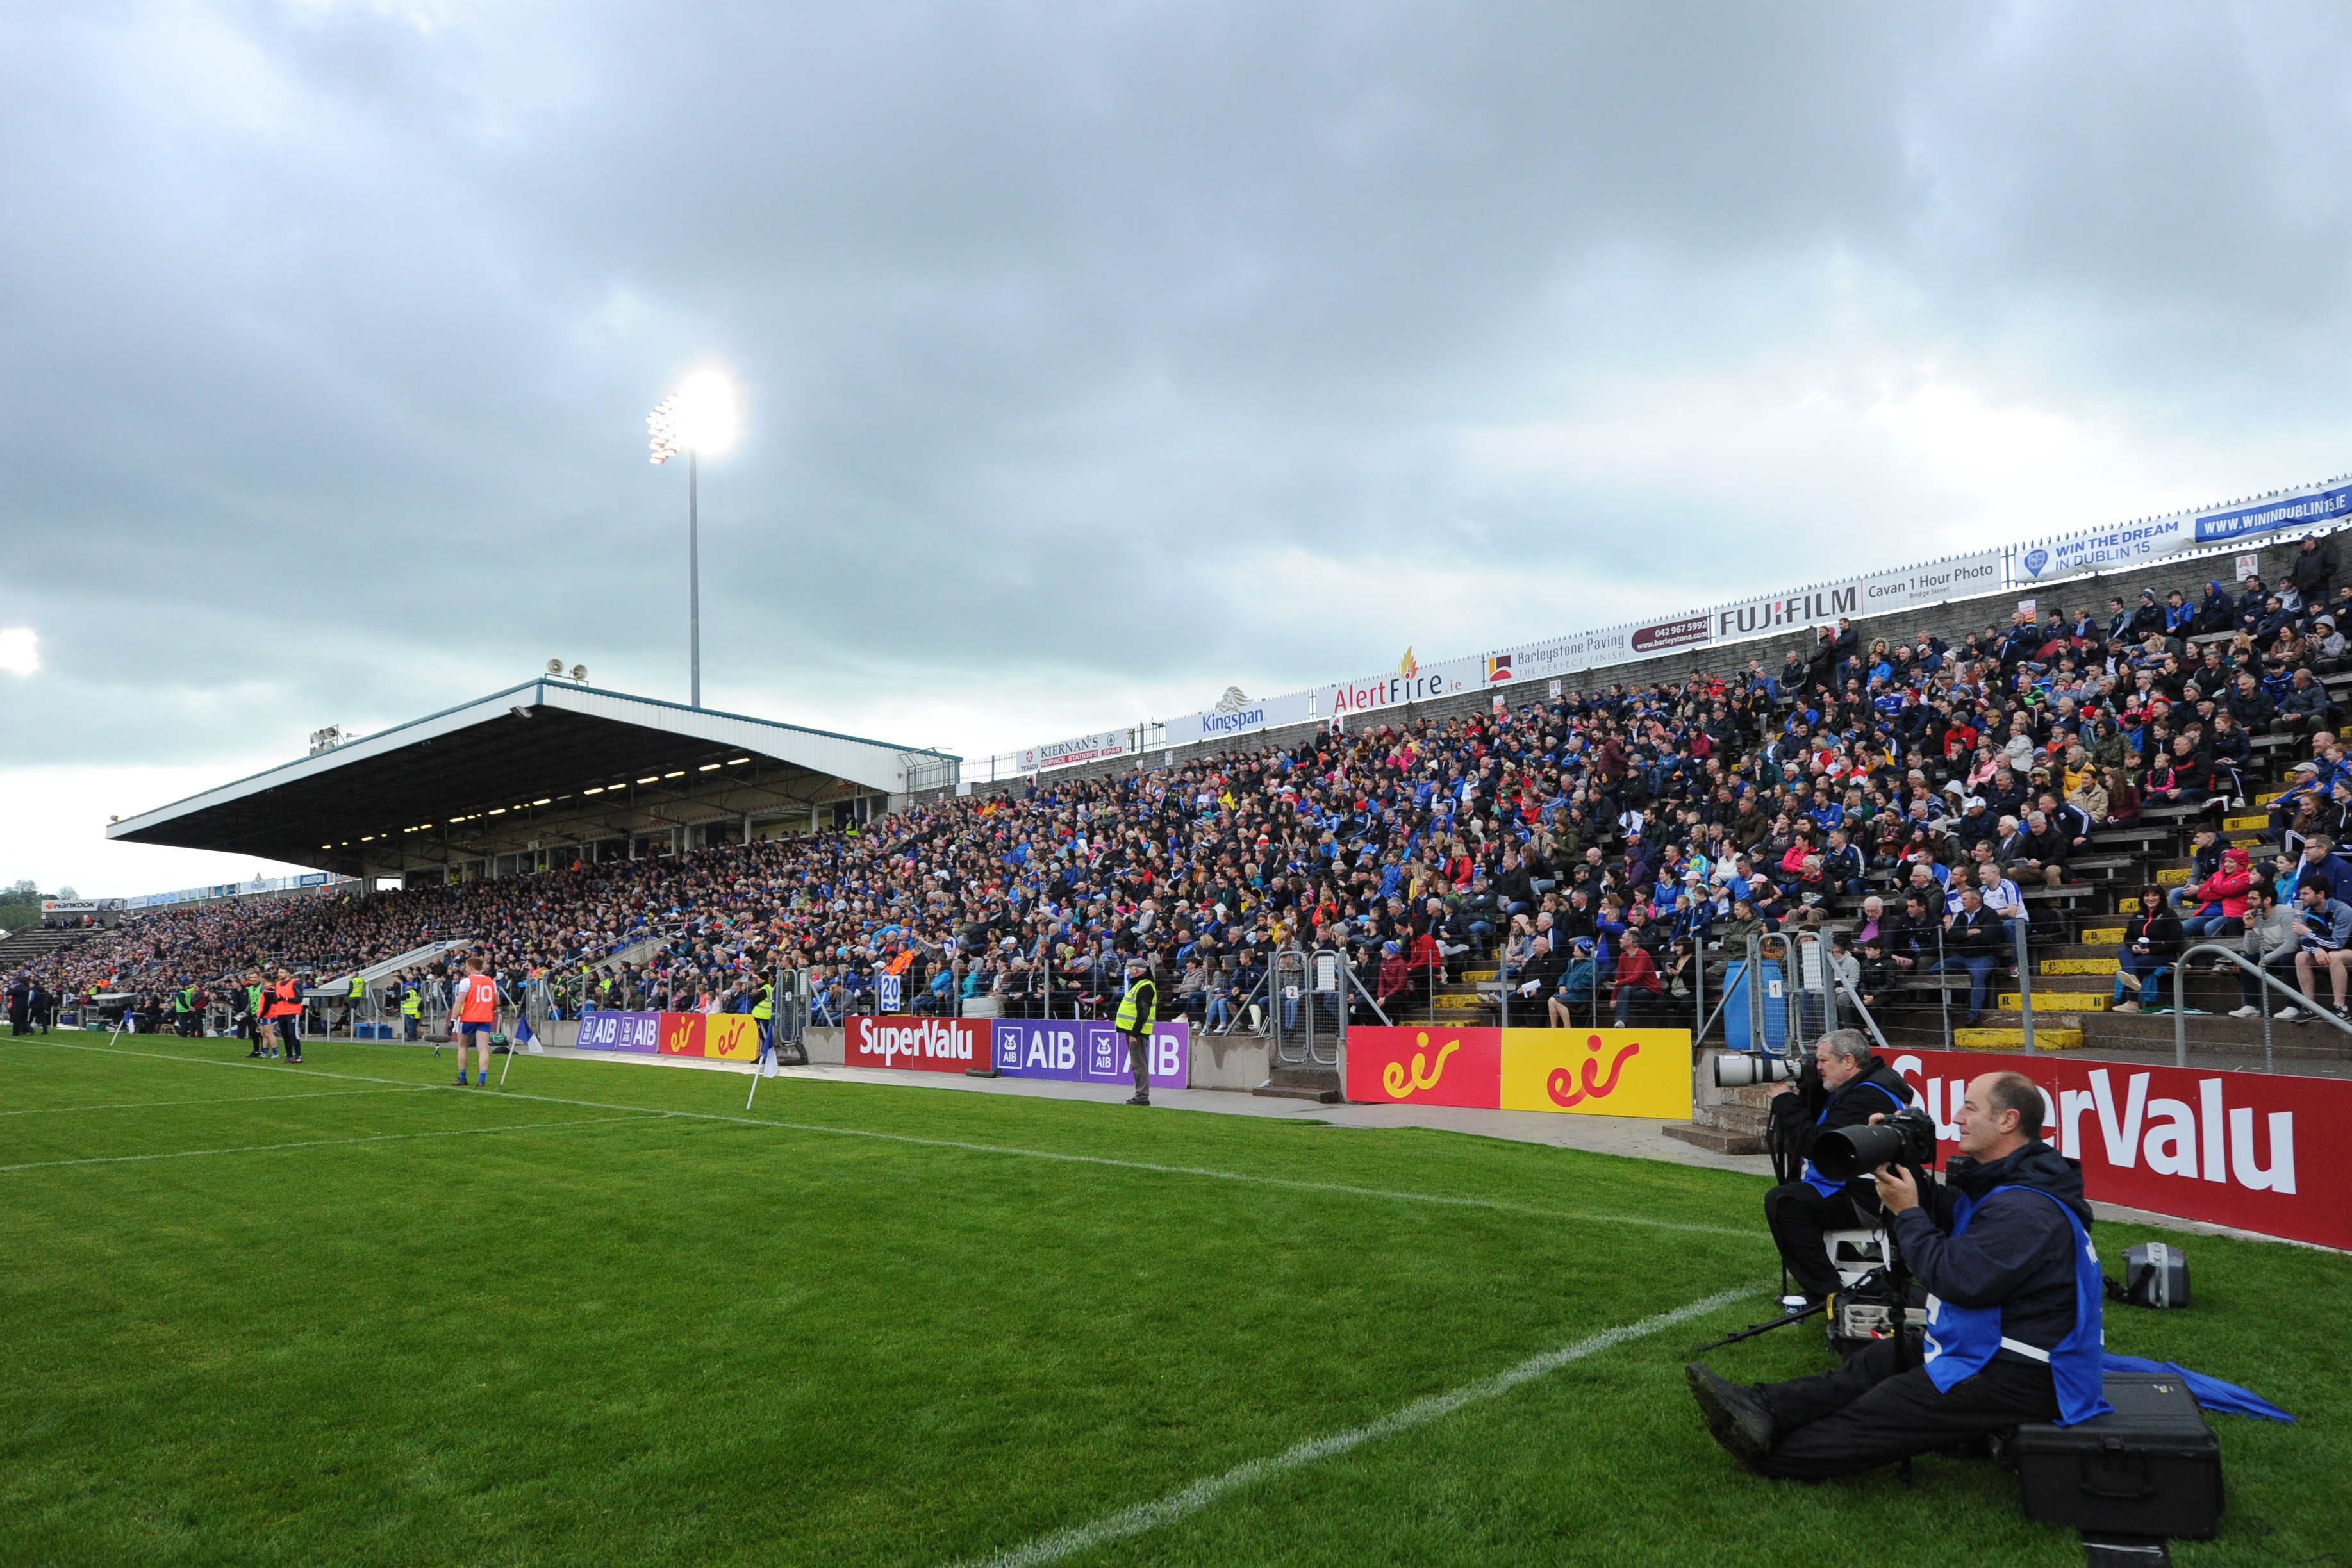 Arrangements confirmed for Ulster Senior Football Championship semi-finals